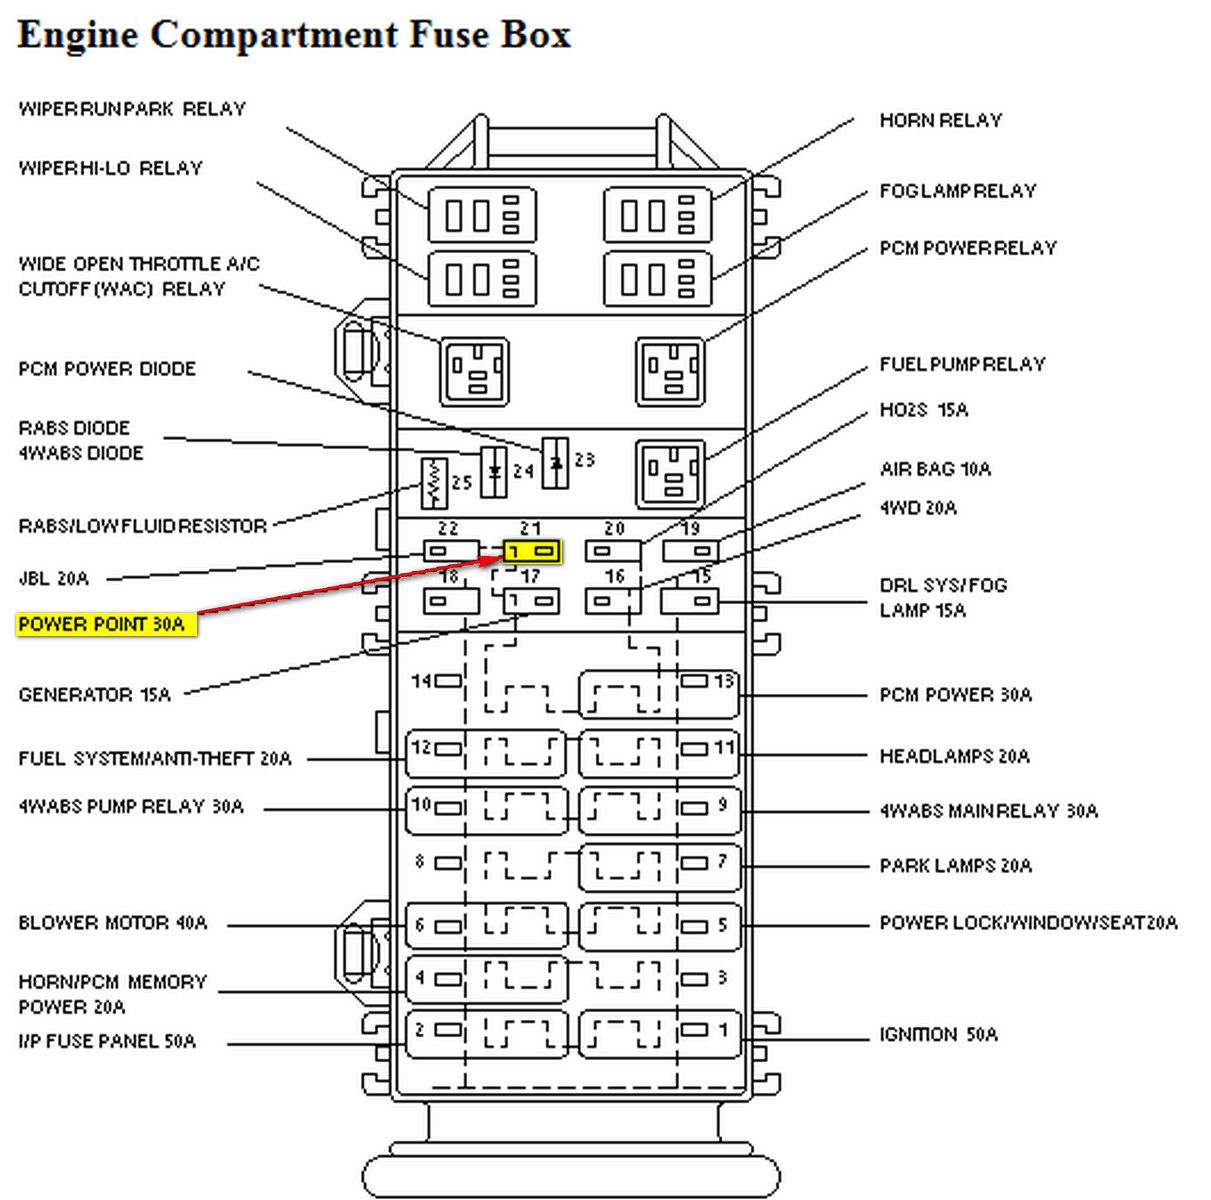 [WRG-9159] 99 Ford Ranger Fuse Box Diagram